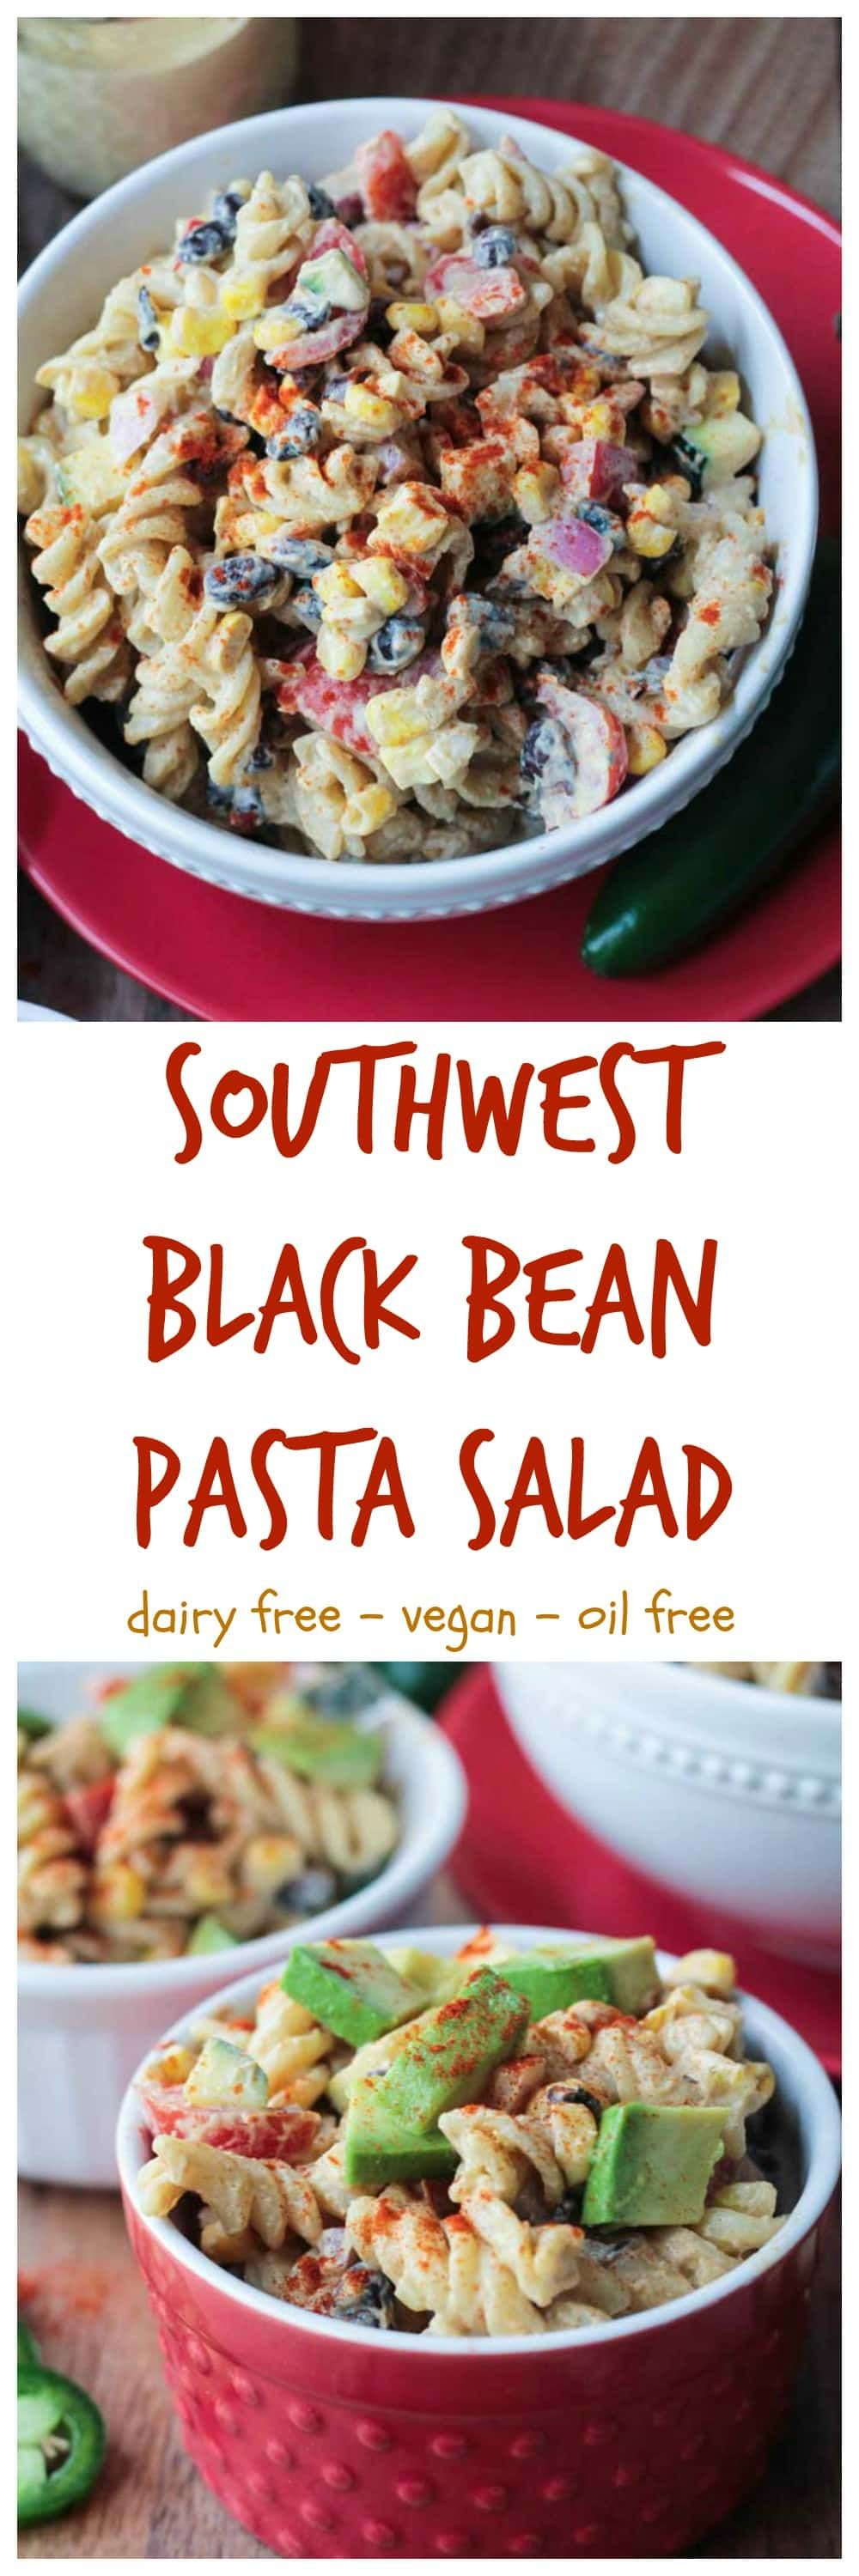 Southwest Black Bean Pasta Salad Black Bean Pasta Salad, with lots of southwest flavor, is going to be your new go-to backyard BBQ dish! This recipe makes enough to feed a crowd, so it's great for entertaining. Perfect for lunch or dinner any day of the week too!